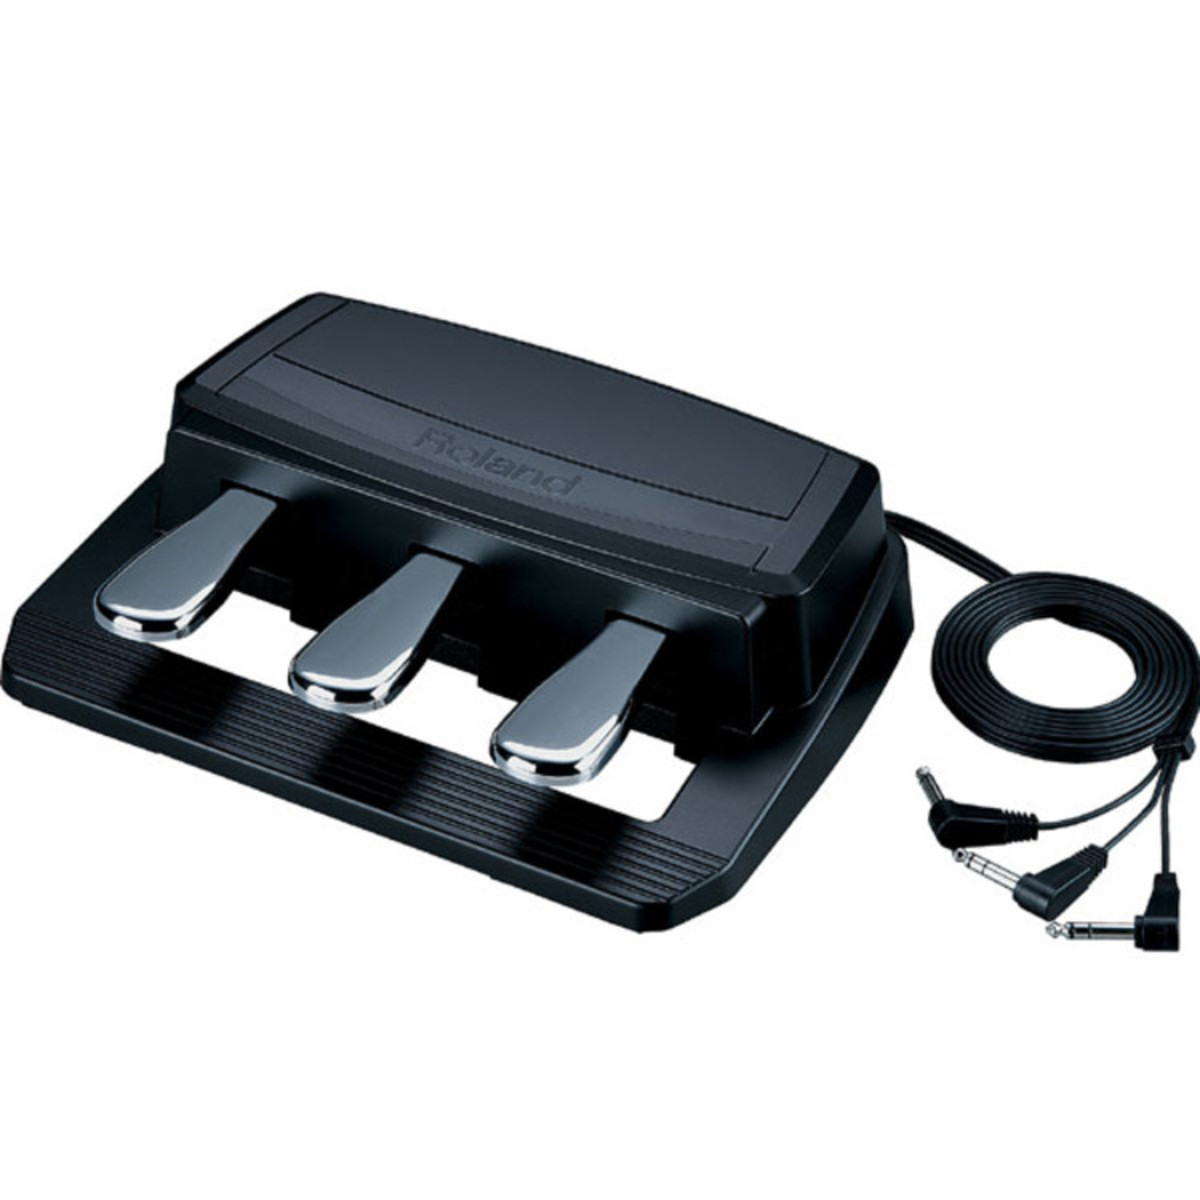 roland rpu 3 triple pedal unit for digital pianos at. Black Bedroom Furniture Sets. Home Design Ideas